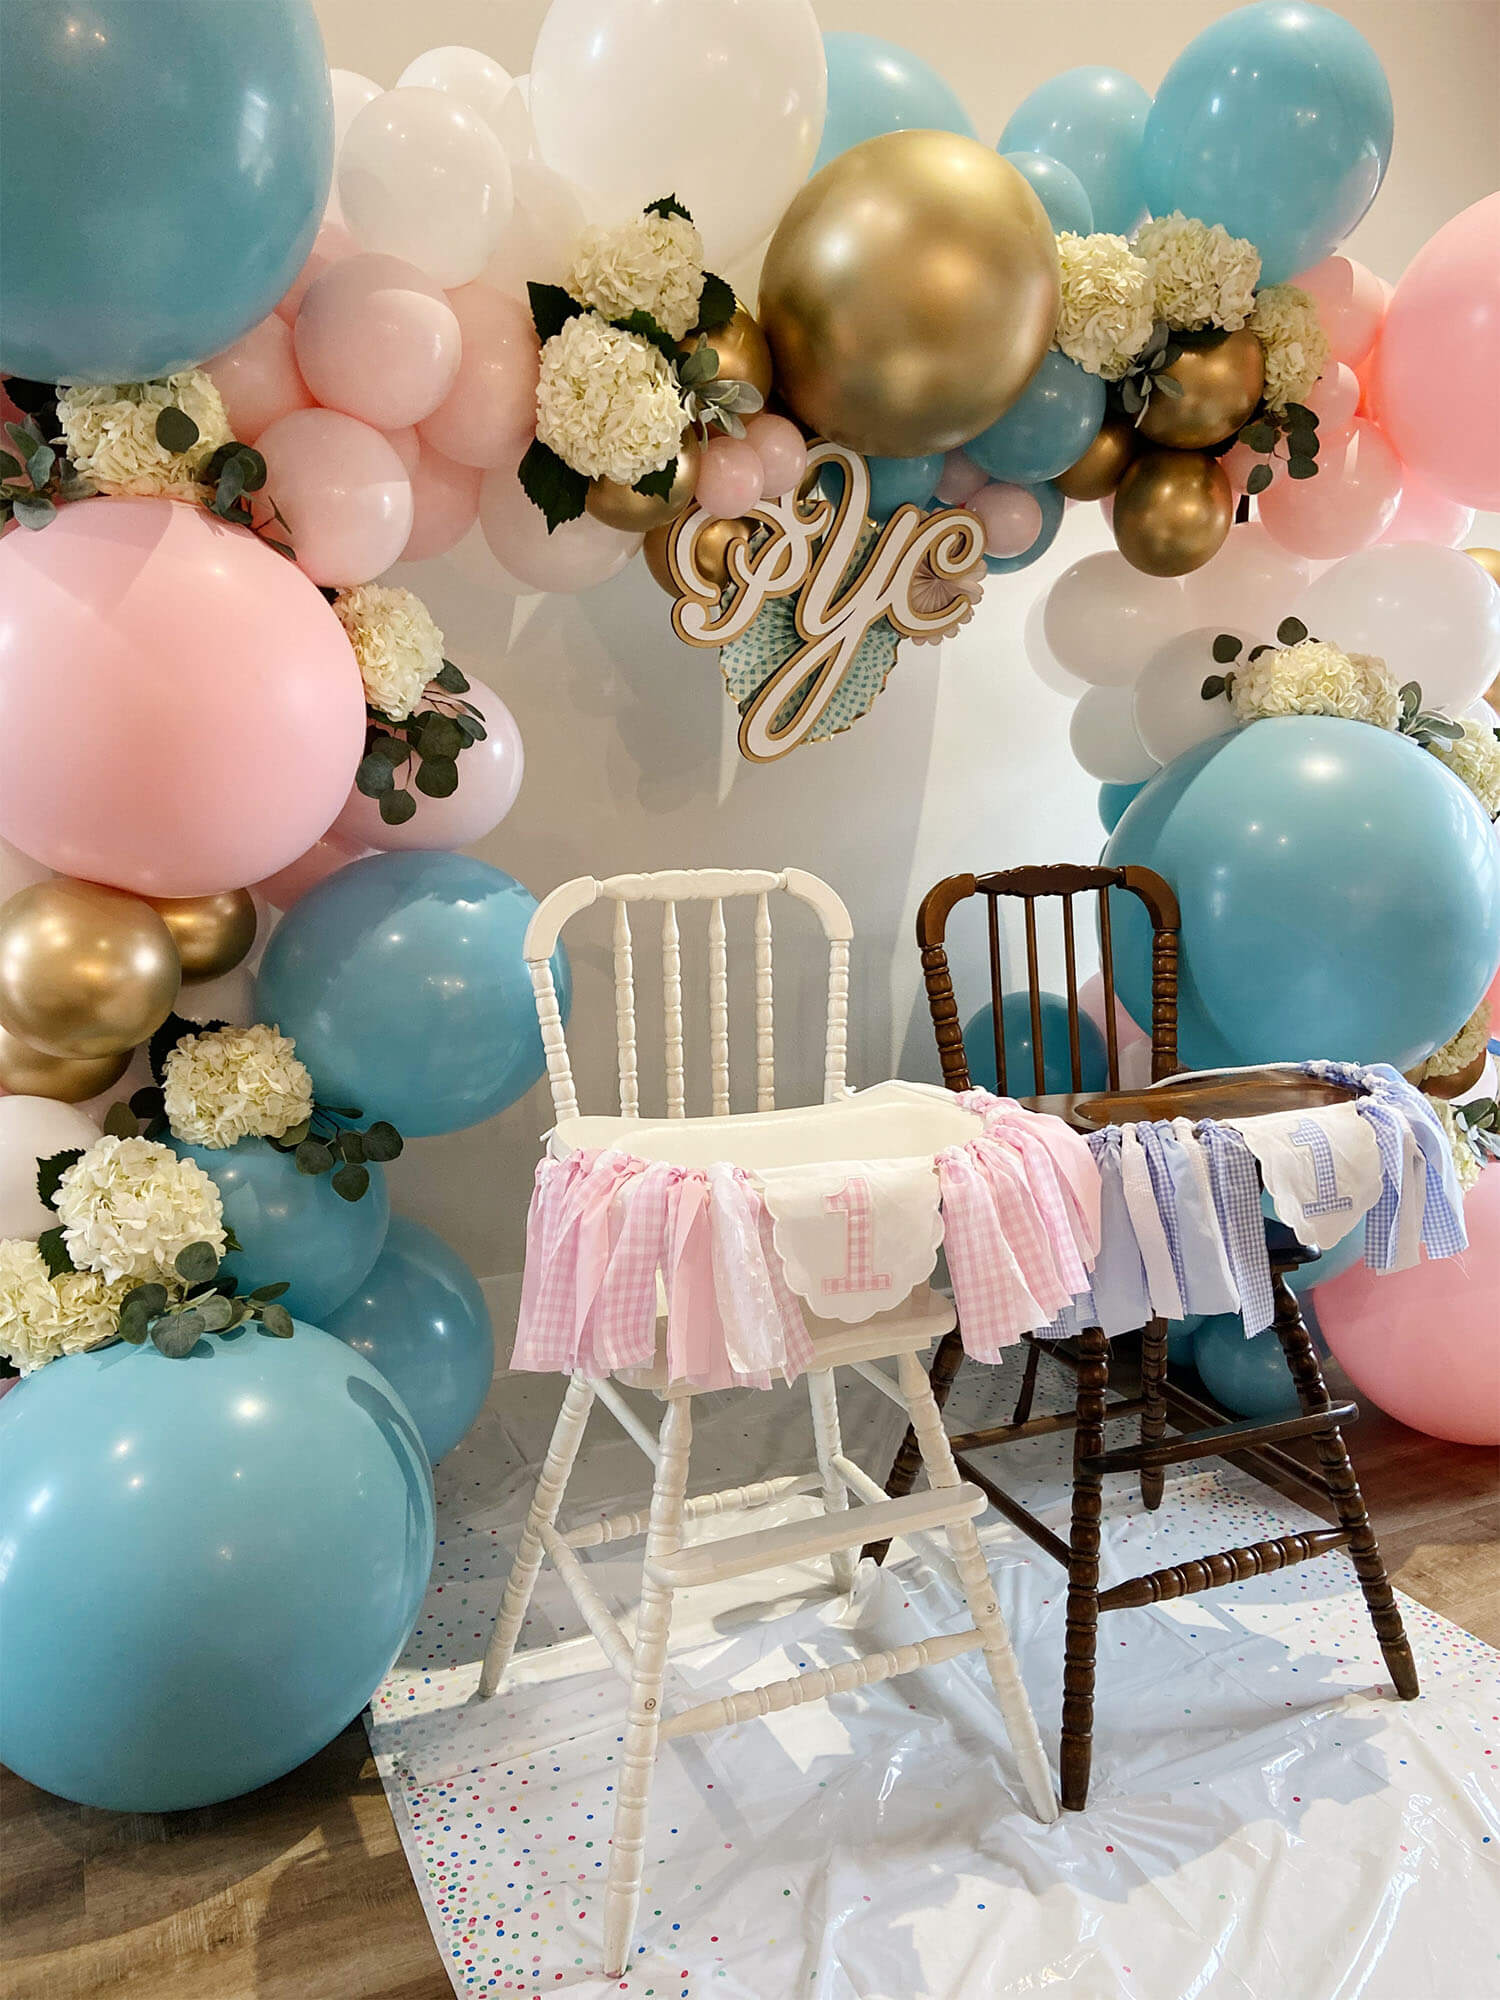 Vintage high chairs with pink and blue balloons and hydrangeas, available from Just Peachy.